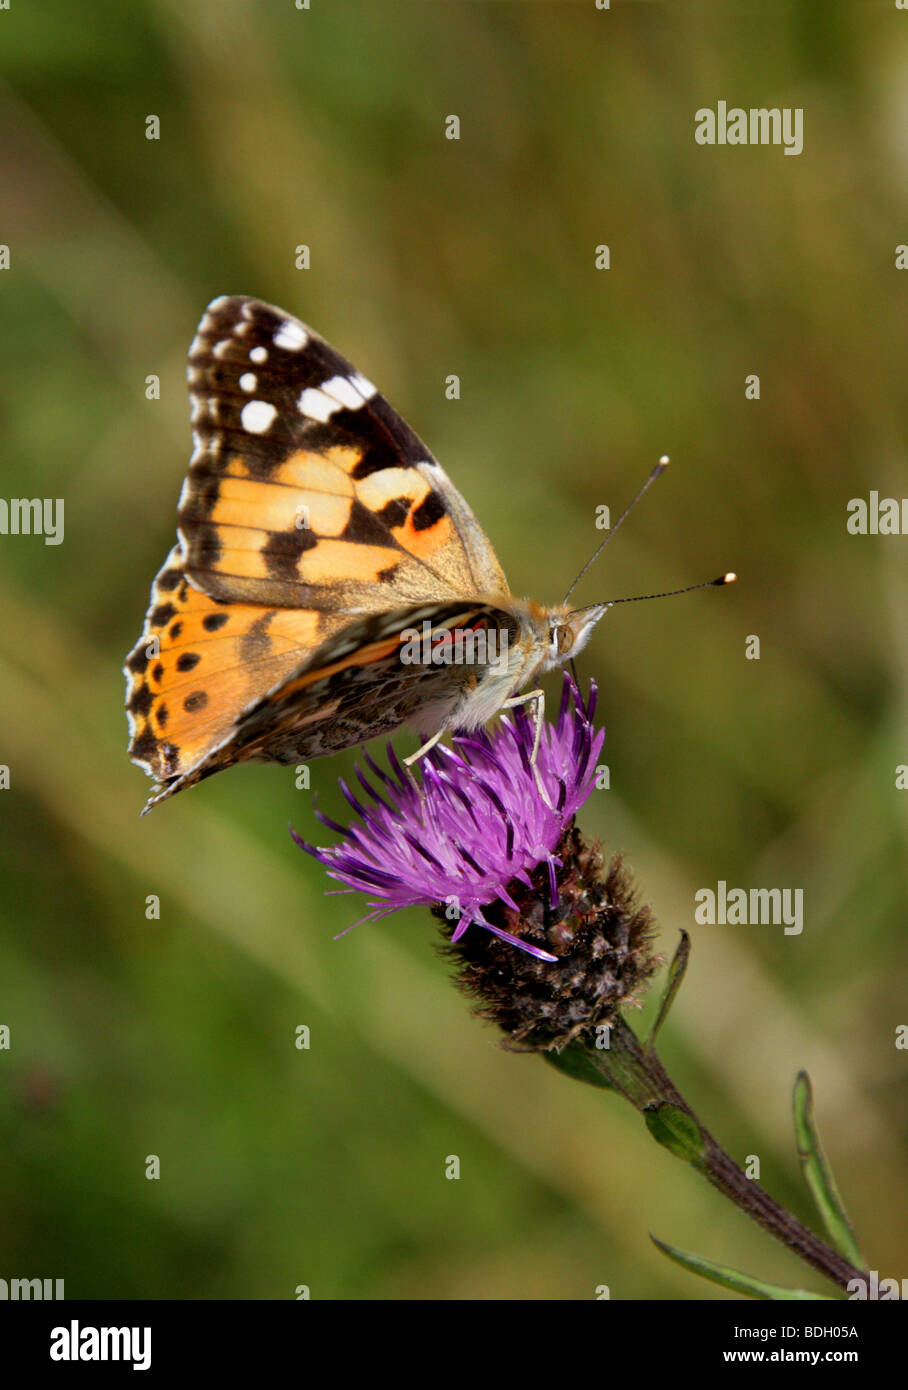 Painted Lady Butterfly, Vanessa cardui, Nymphalidae - Stock Image